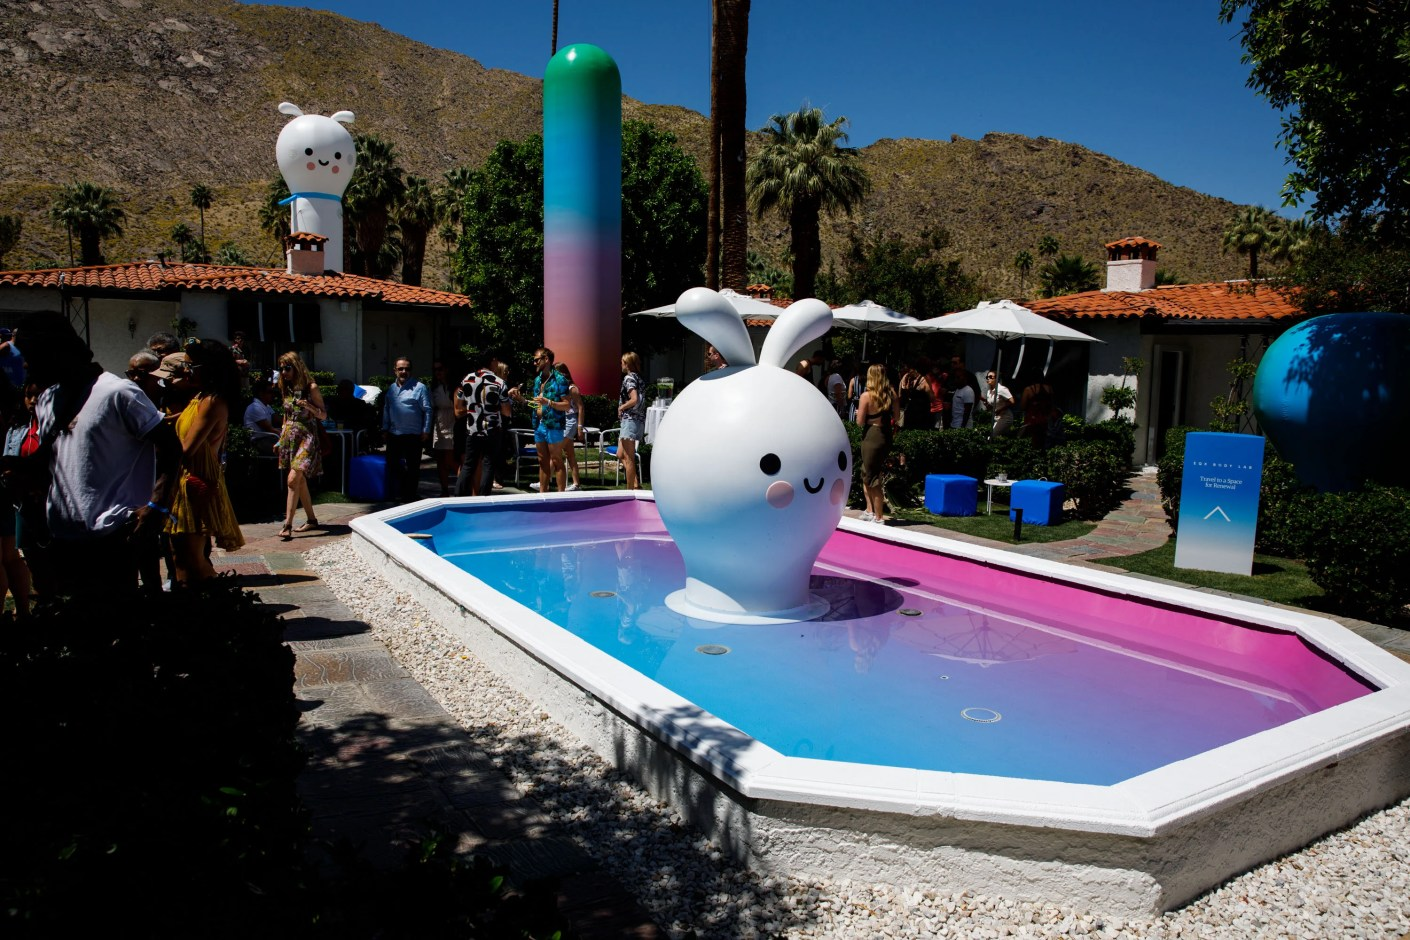 The Inflatable Sculpture Garden by FriendsWithYou at American Express Platinum House during Coachella weekend. (Photo by Patrick T. Fallon/The Points Guy)